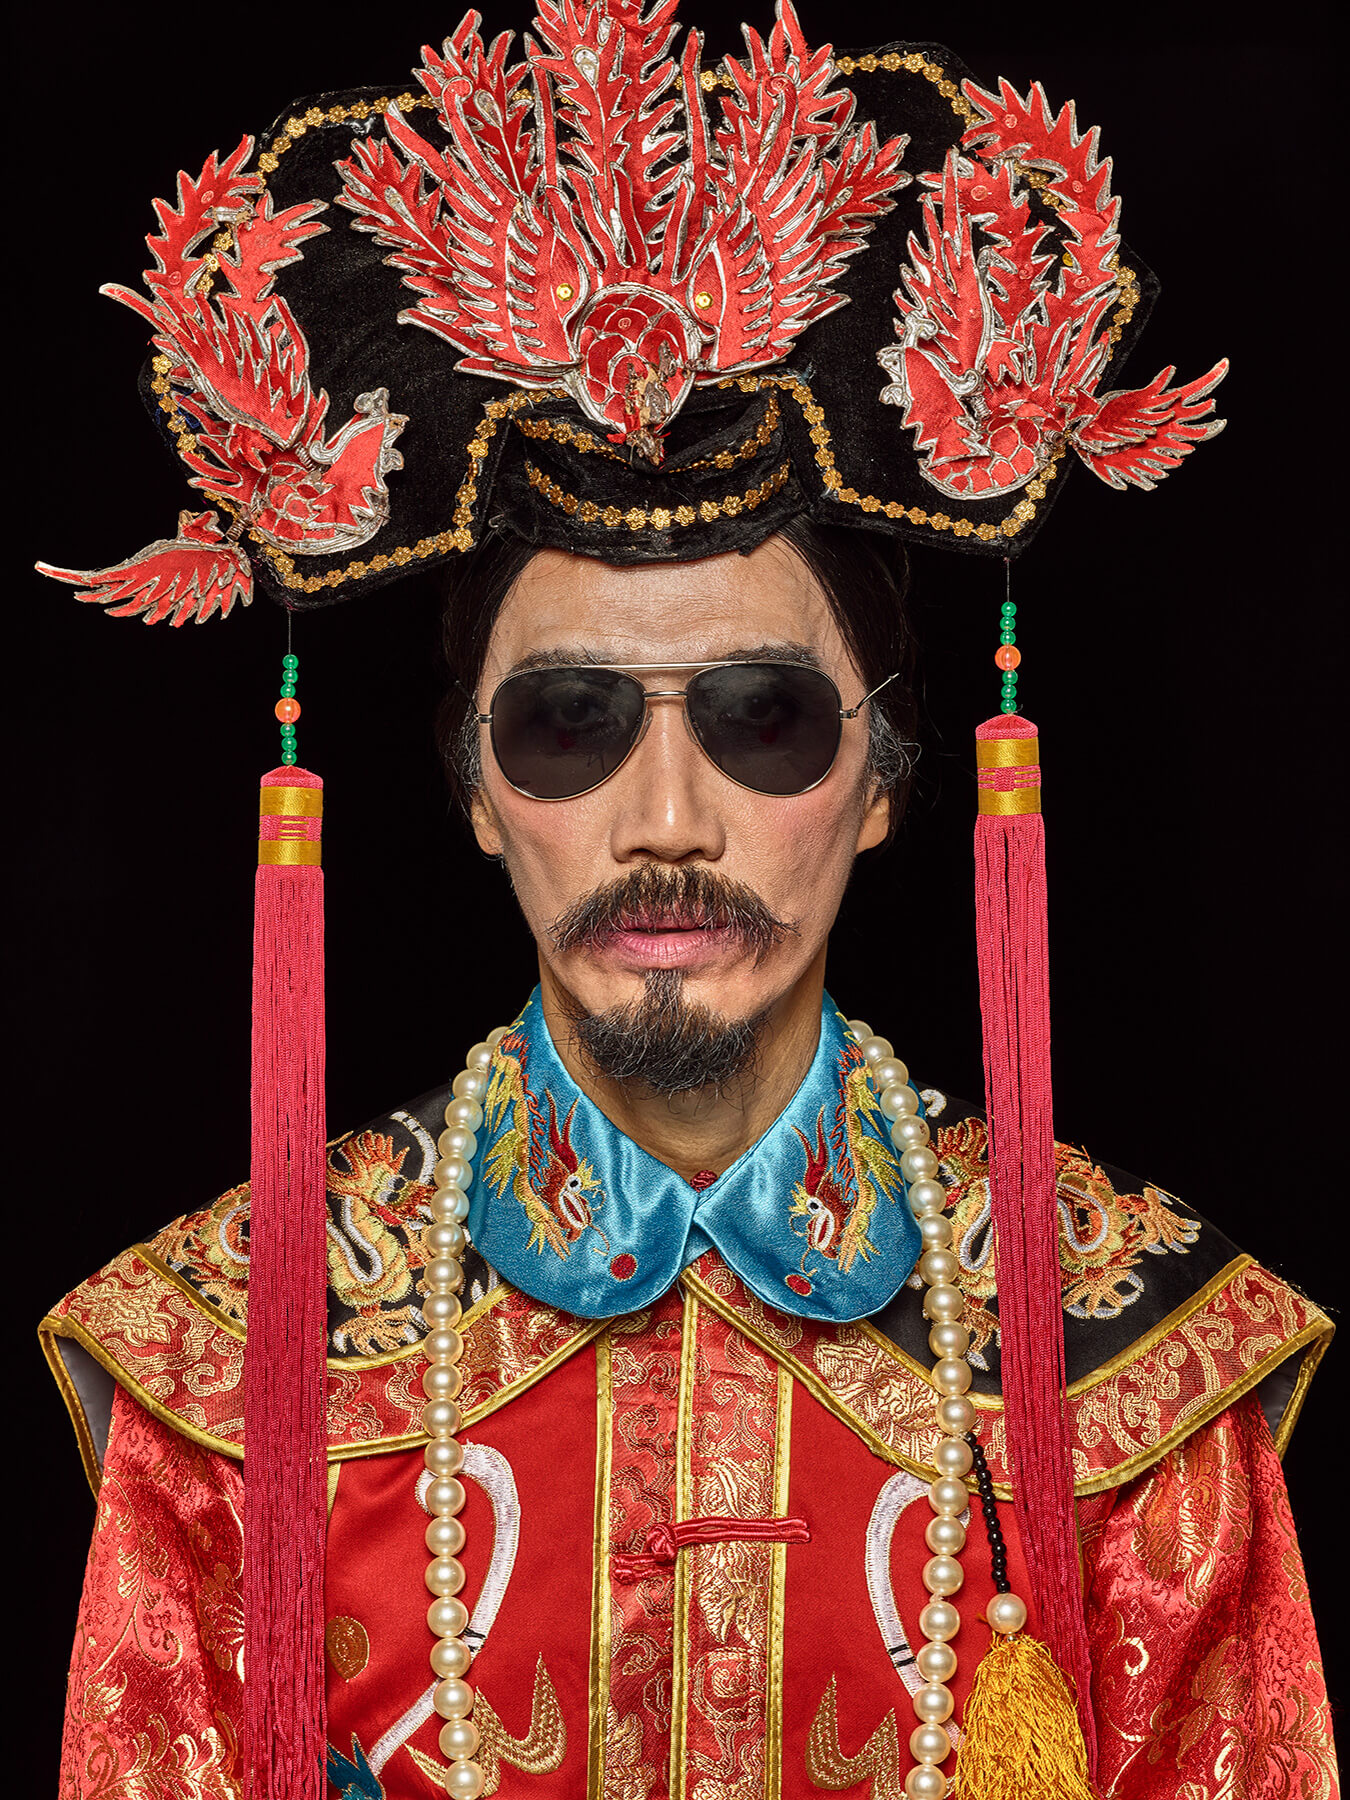 10 Aug 2017 Derong is in full empress dowager costume and aviator shades